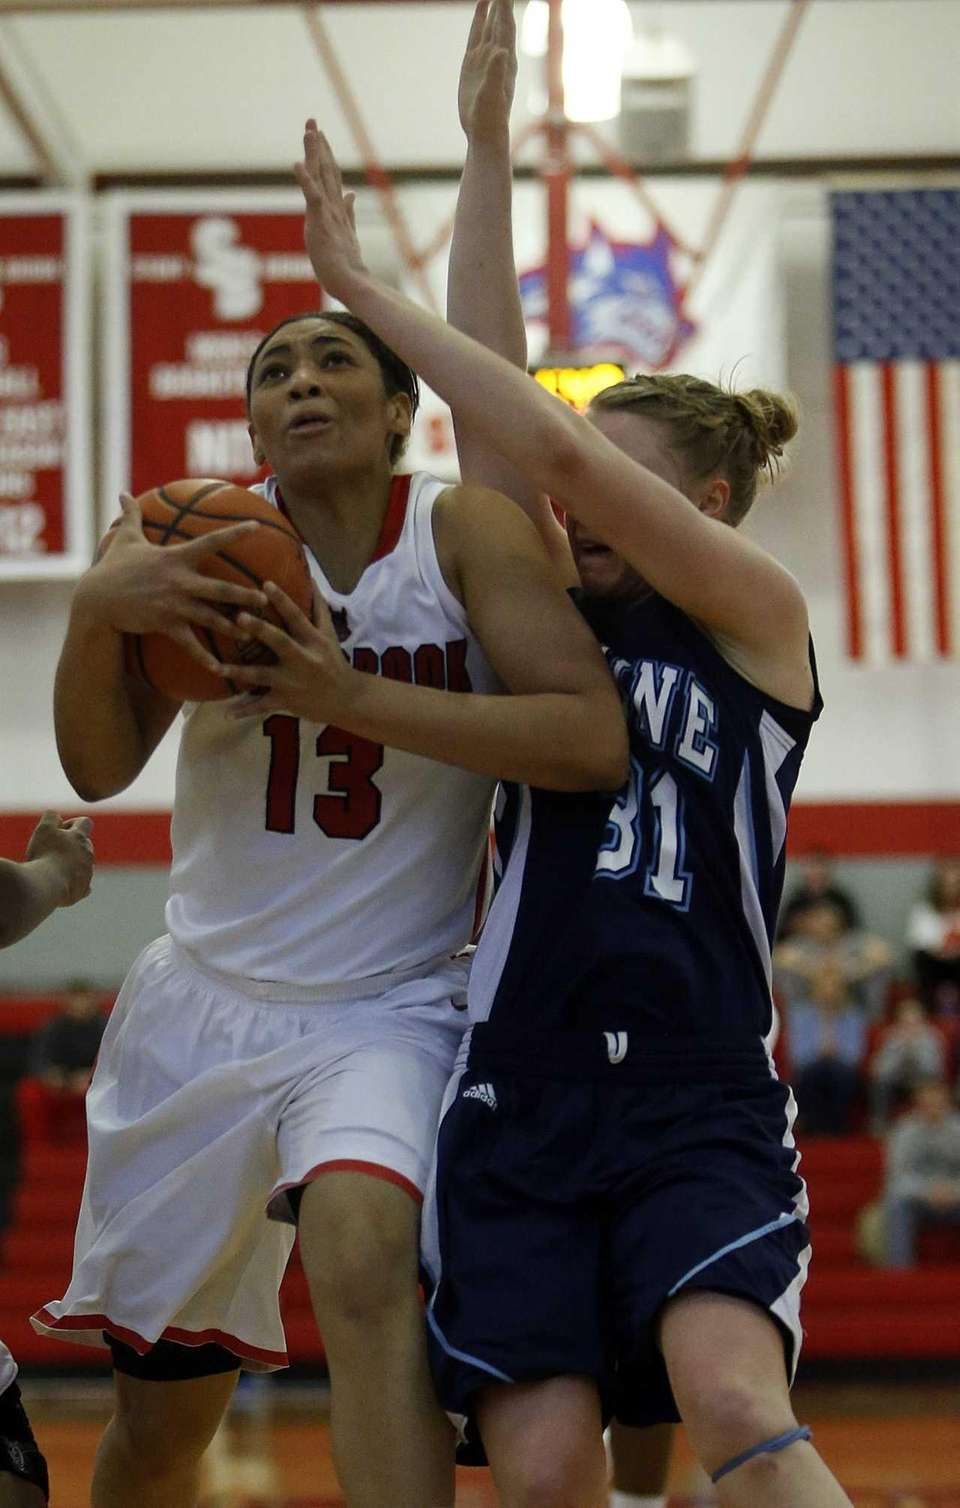 Stony Brook's Sabre Proctor is fouled in the